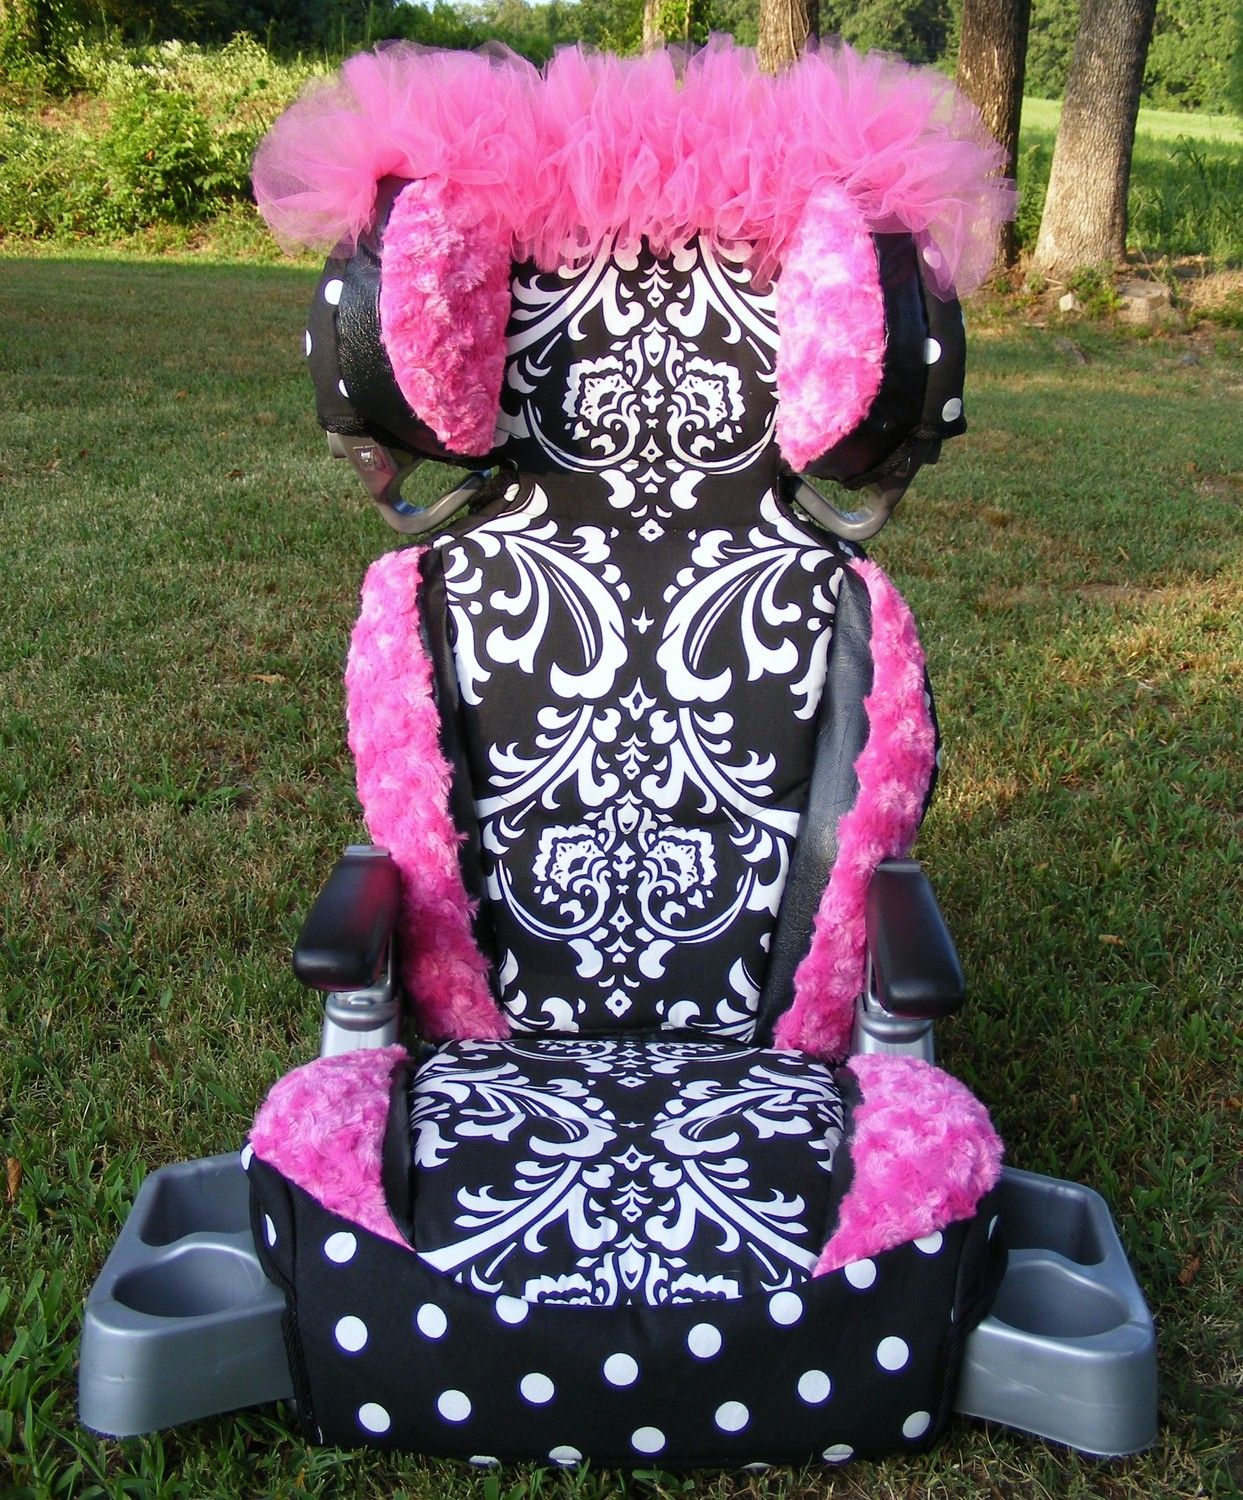 Reupholstered Car Seat Covers Damask Polka Dot Rose By Diaperbags 15000 Such A Great Idea As Usually All Seats And Most Strollers Are